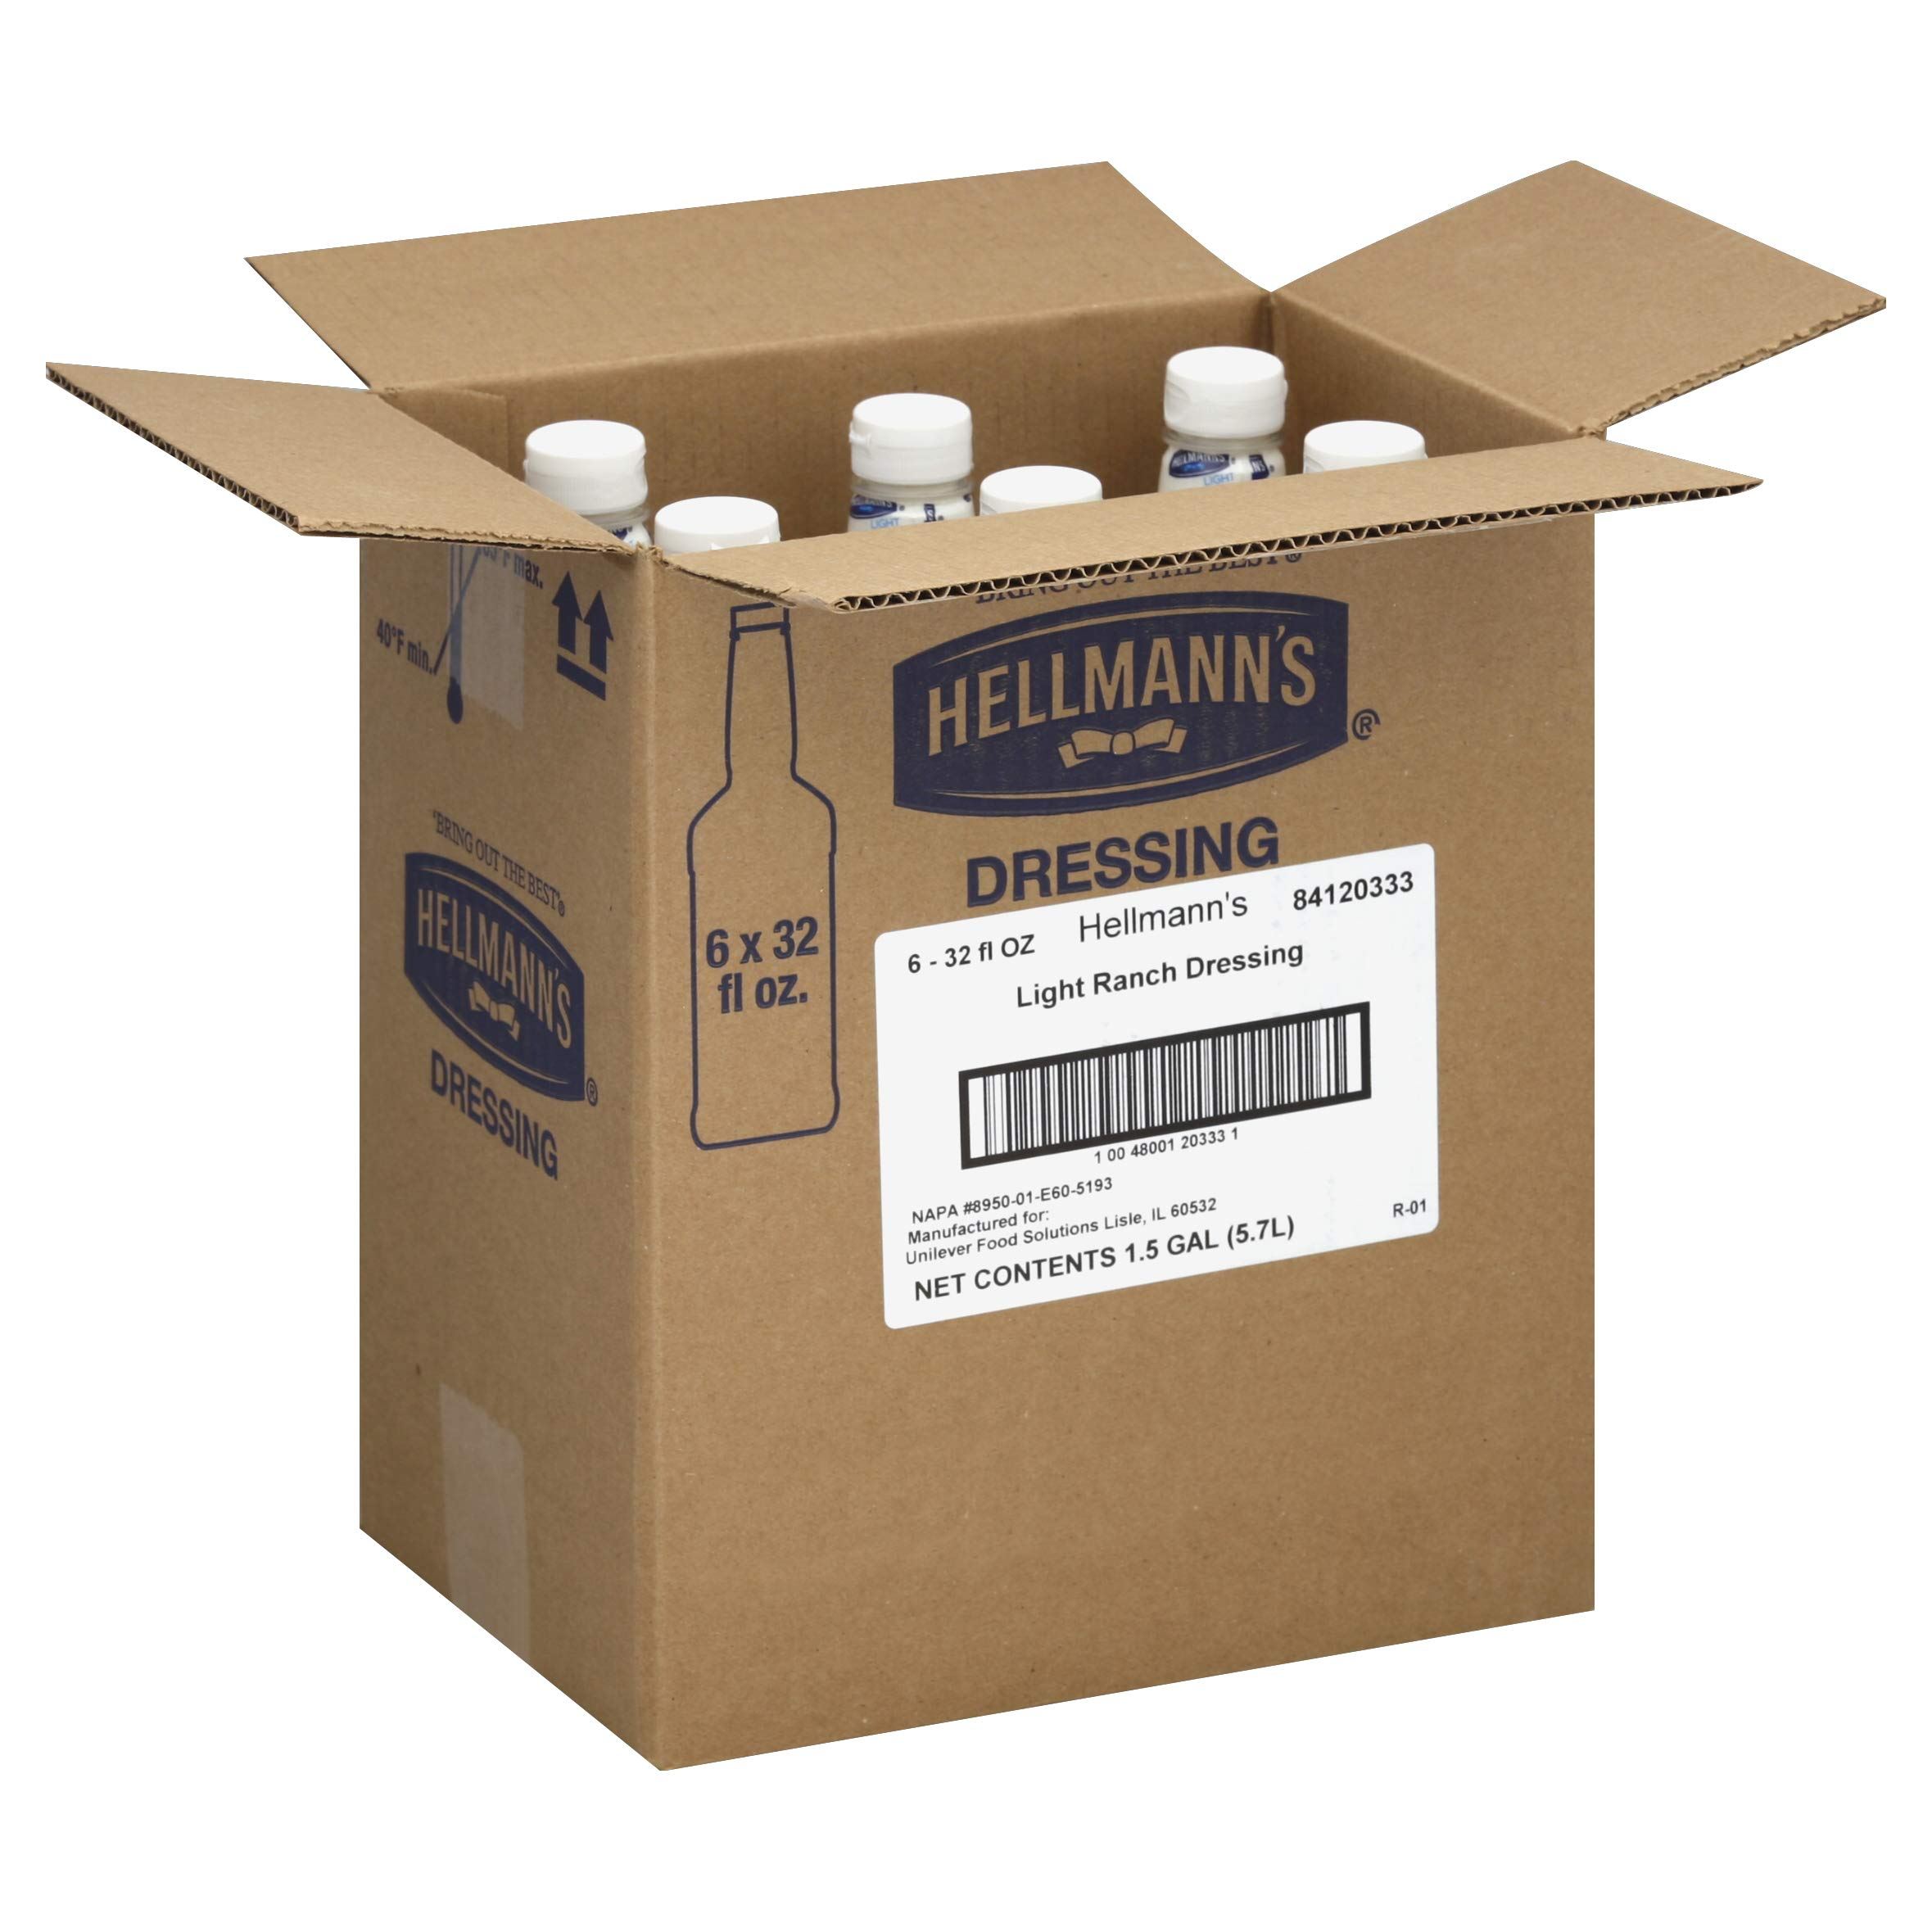 Hellmanns Blue Ribbon Collection Light Ranch Dressing, 32 Ounce - 6 per case.